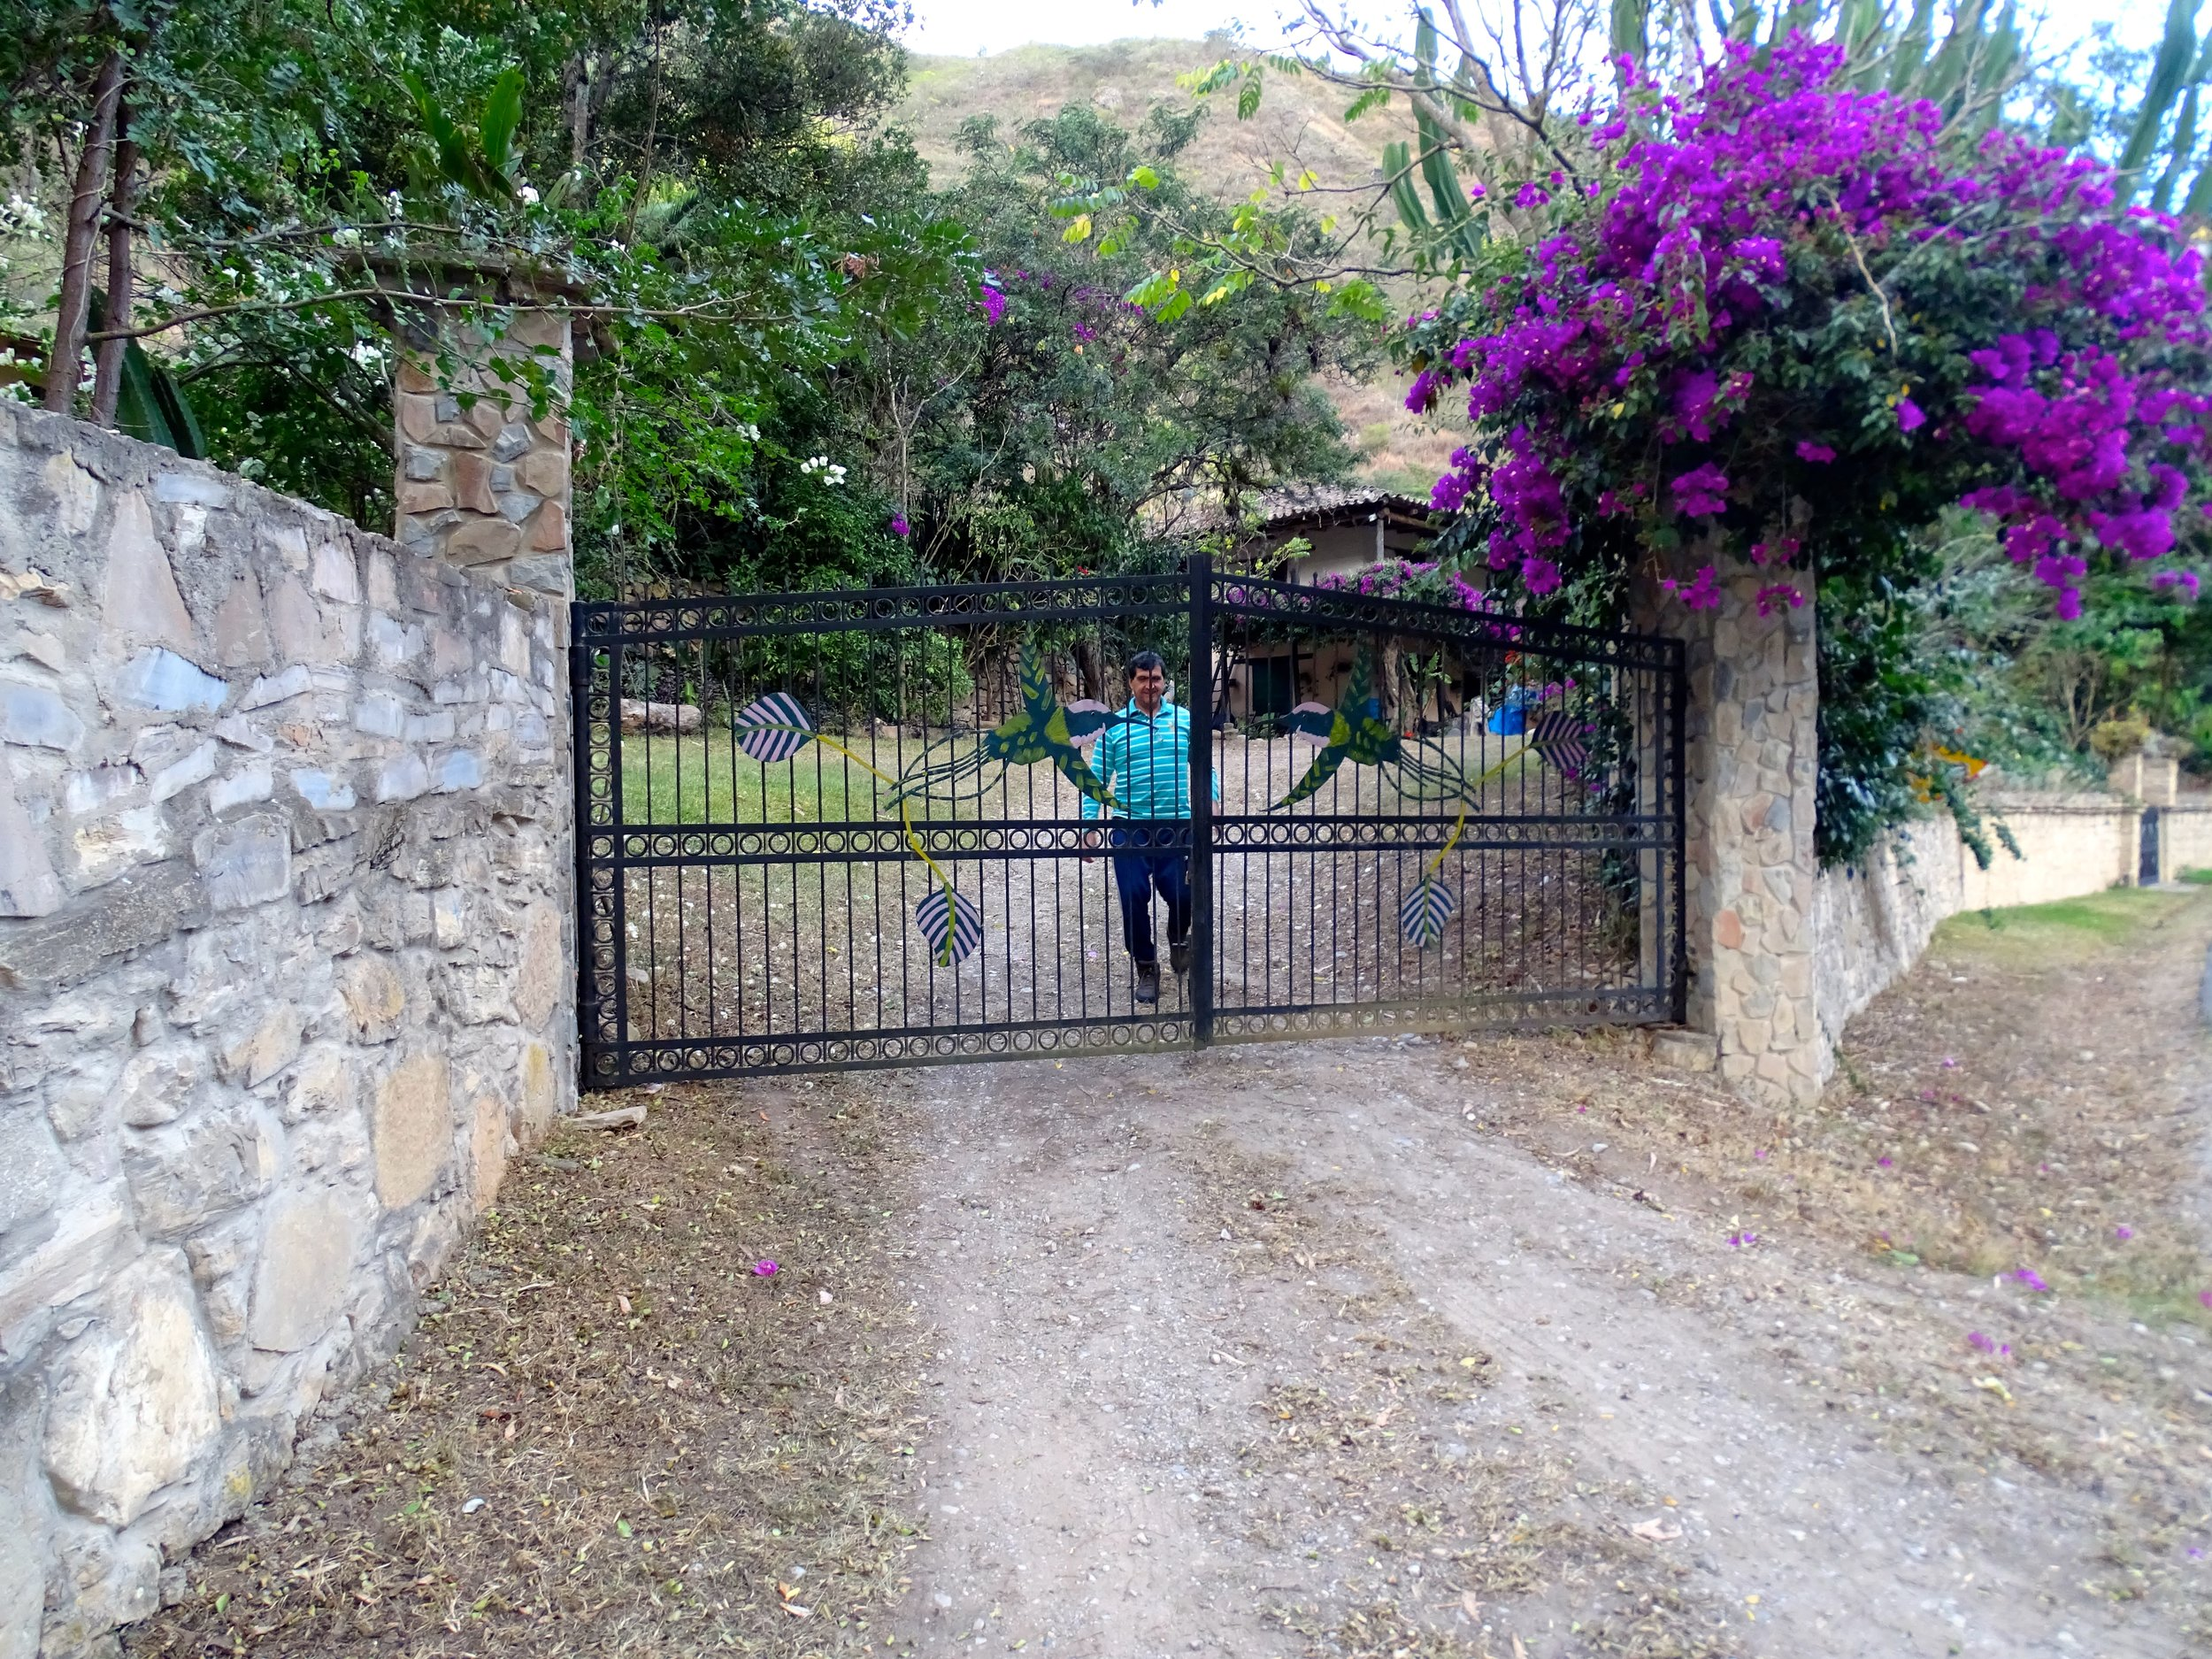 The gates to El Chillo, our very luxurious hostel we splurged on.